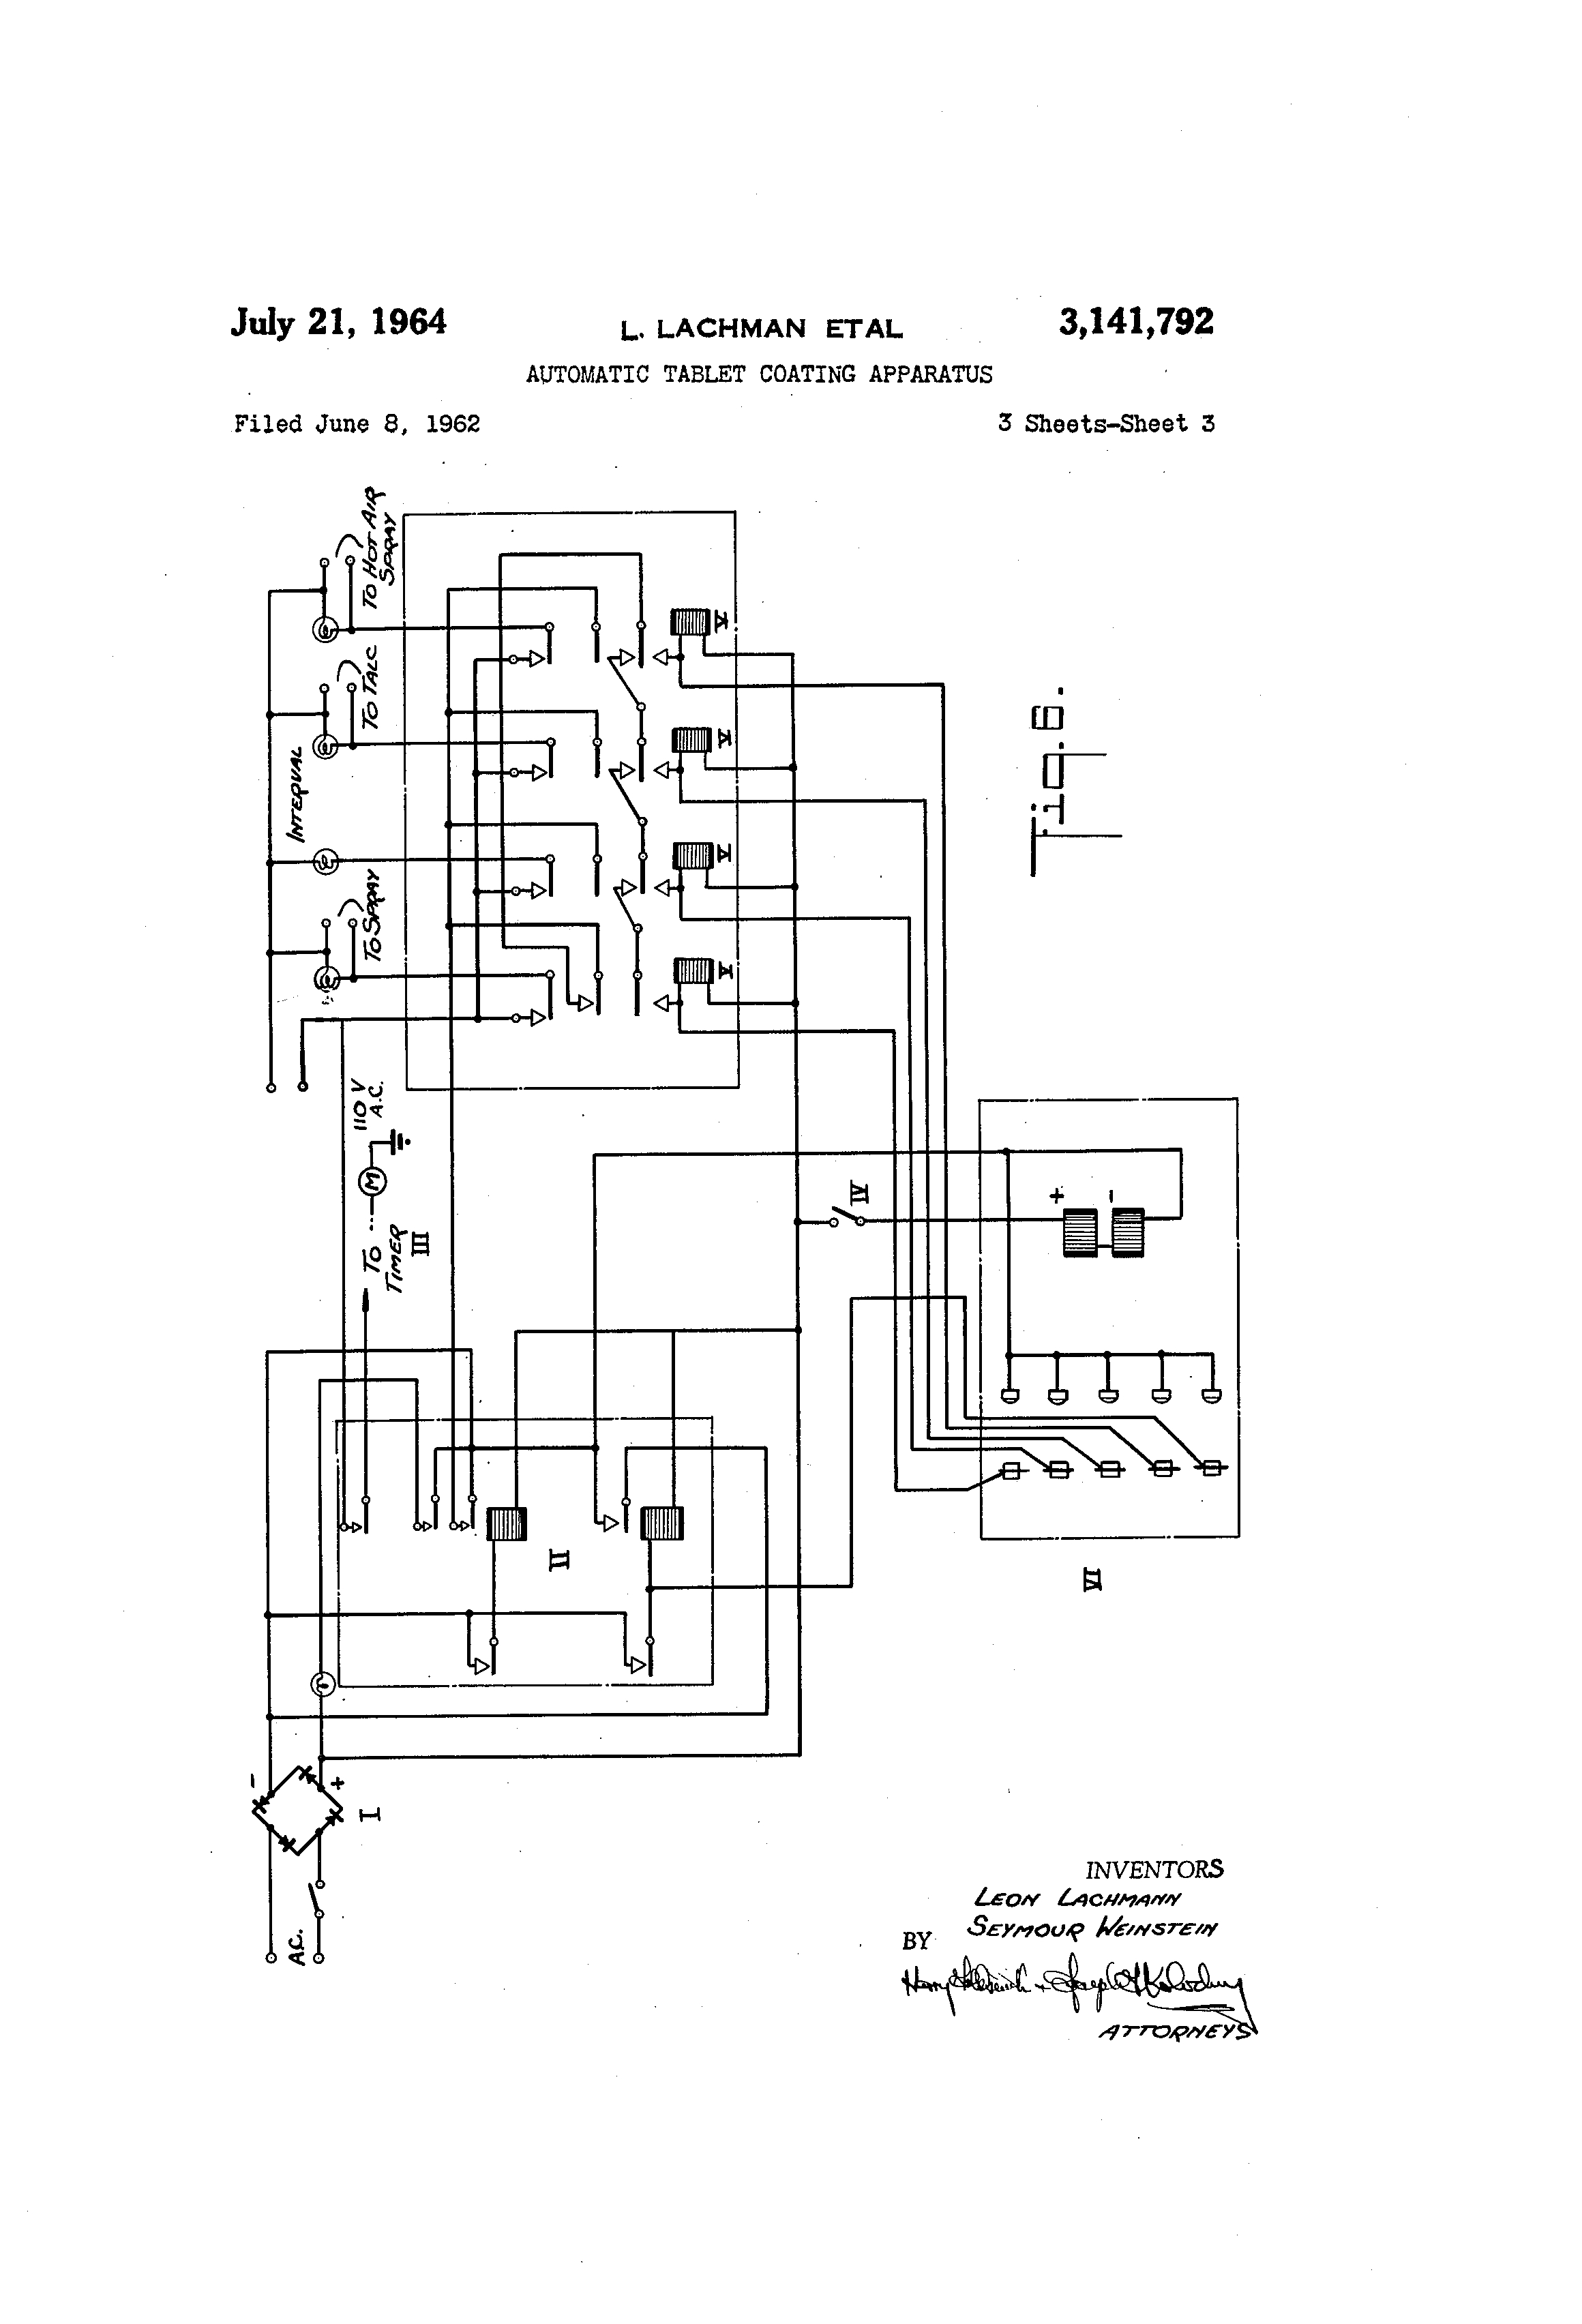 ansul system wiring diagram Download-Ansul System Wiring Diagram Copy Unusual Ansul System Typical Wiring Diagram Ideas Electrical 15-f